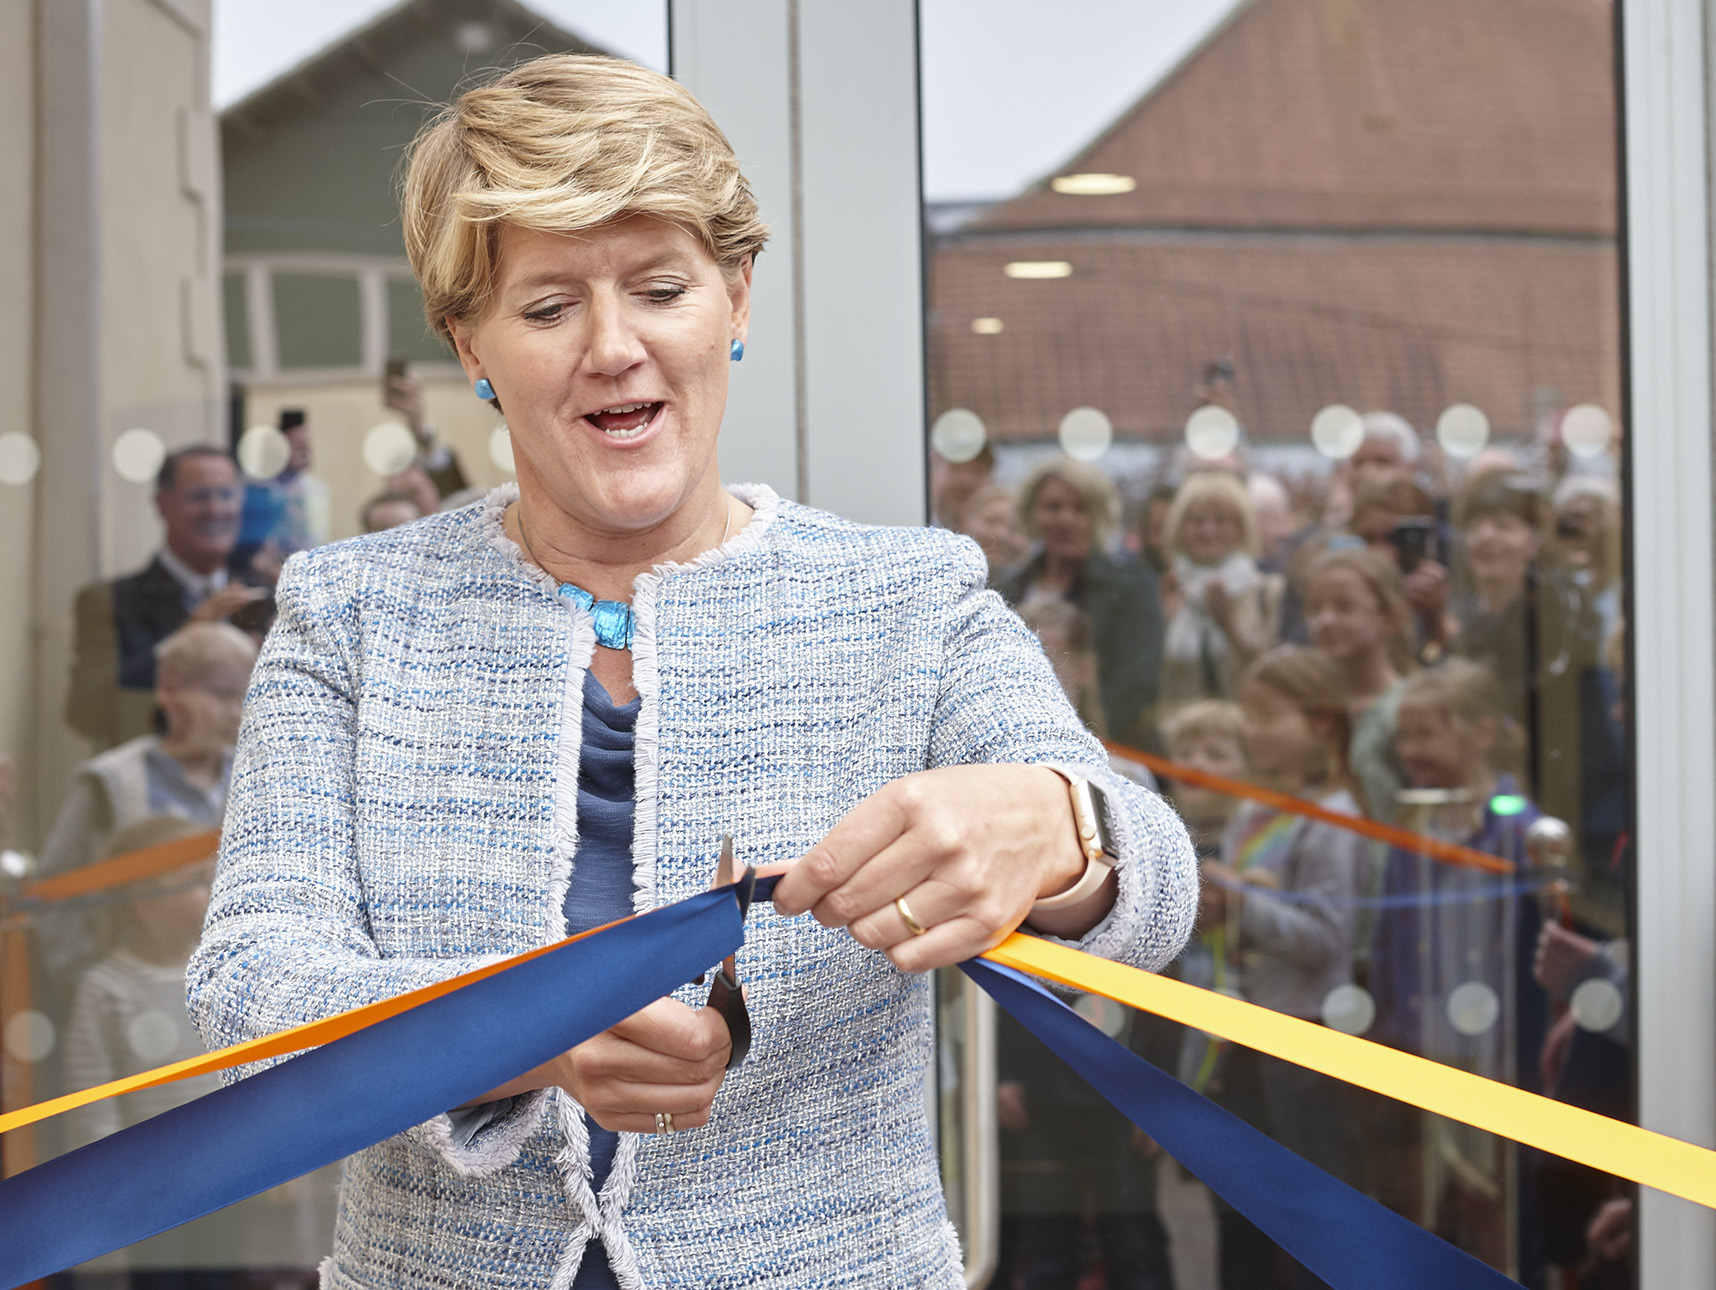 Clare Balding cutting the ribbon to St Mary's Calne new sports complex. Photo: Ian Scaramanga